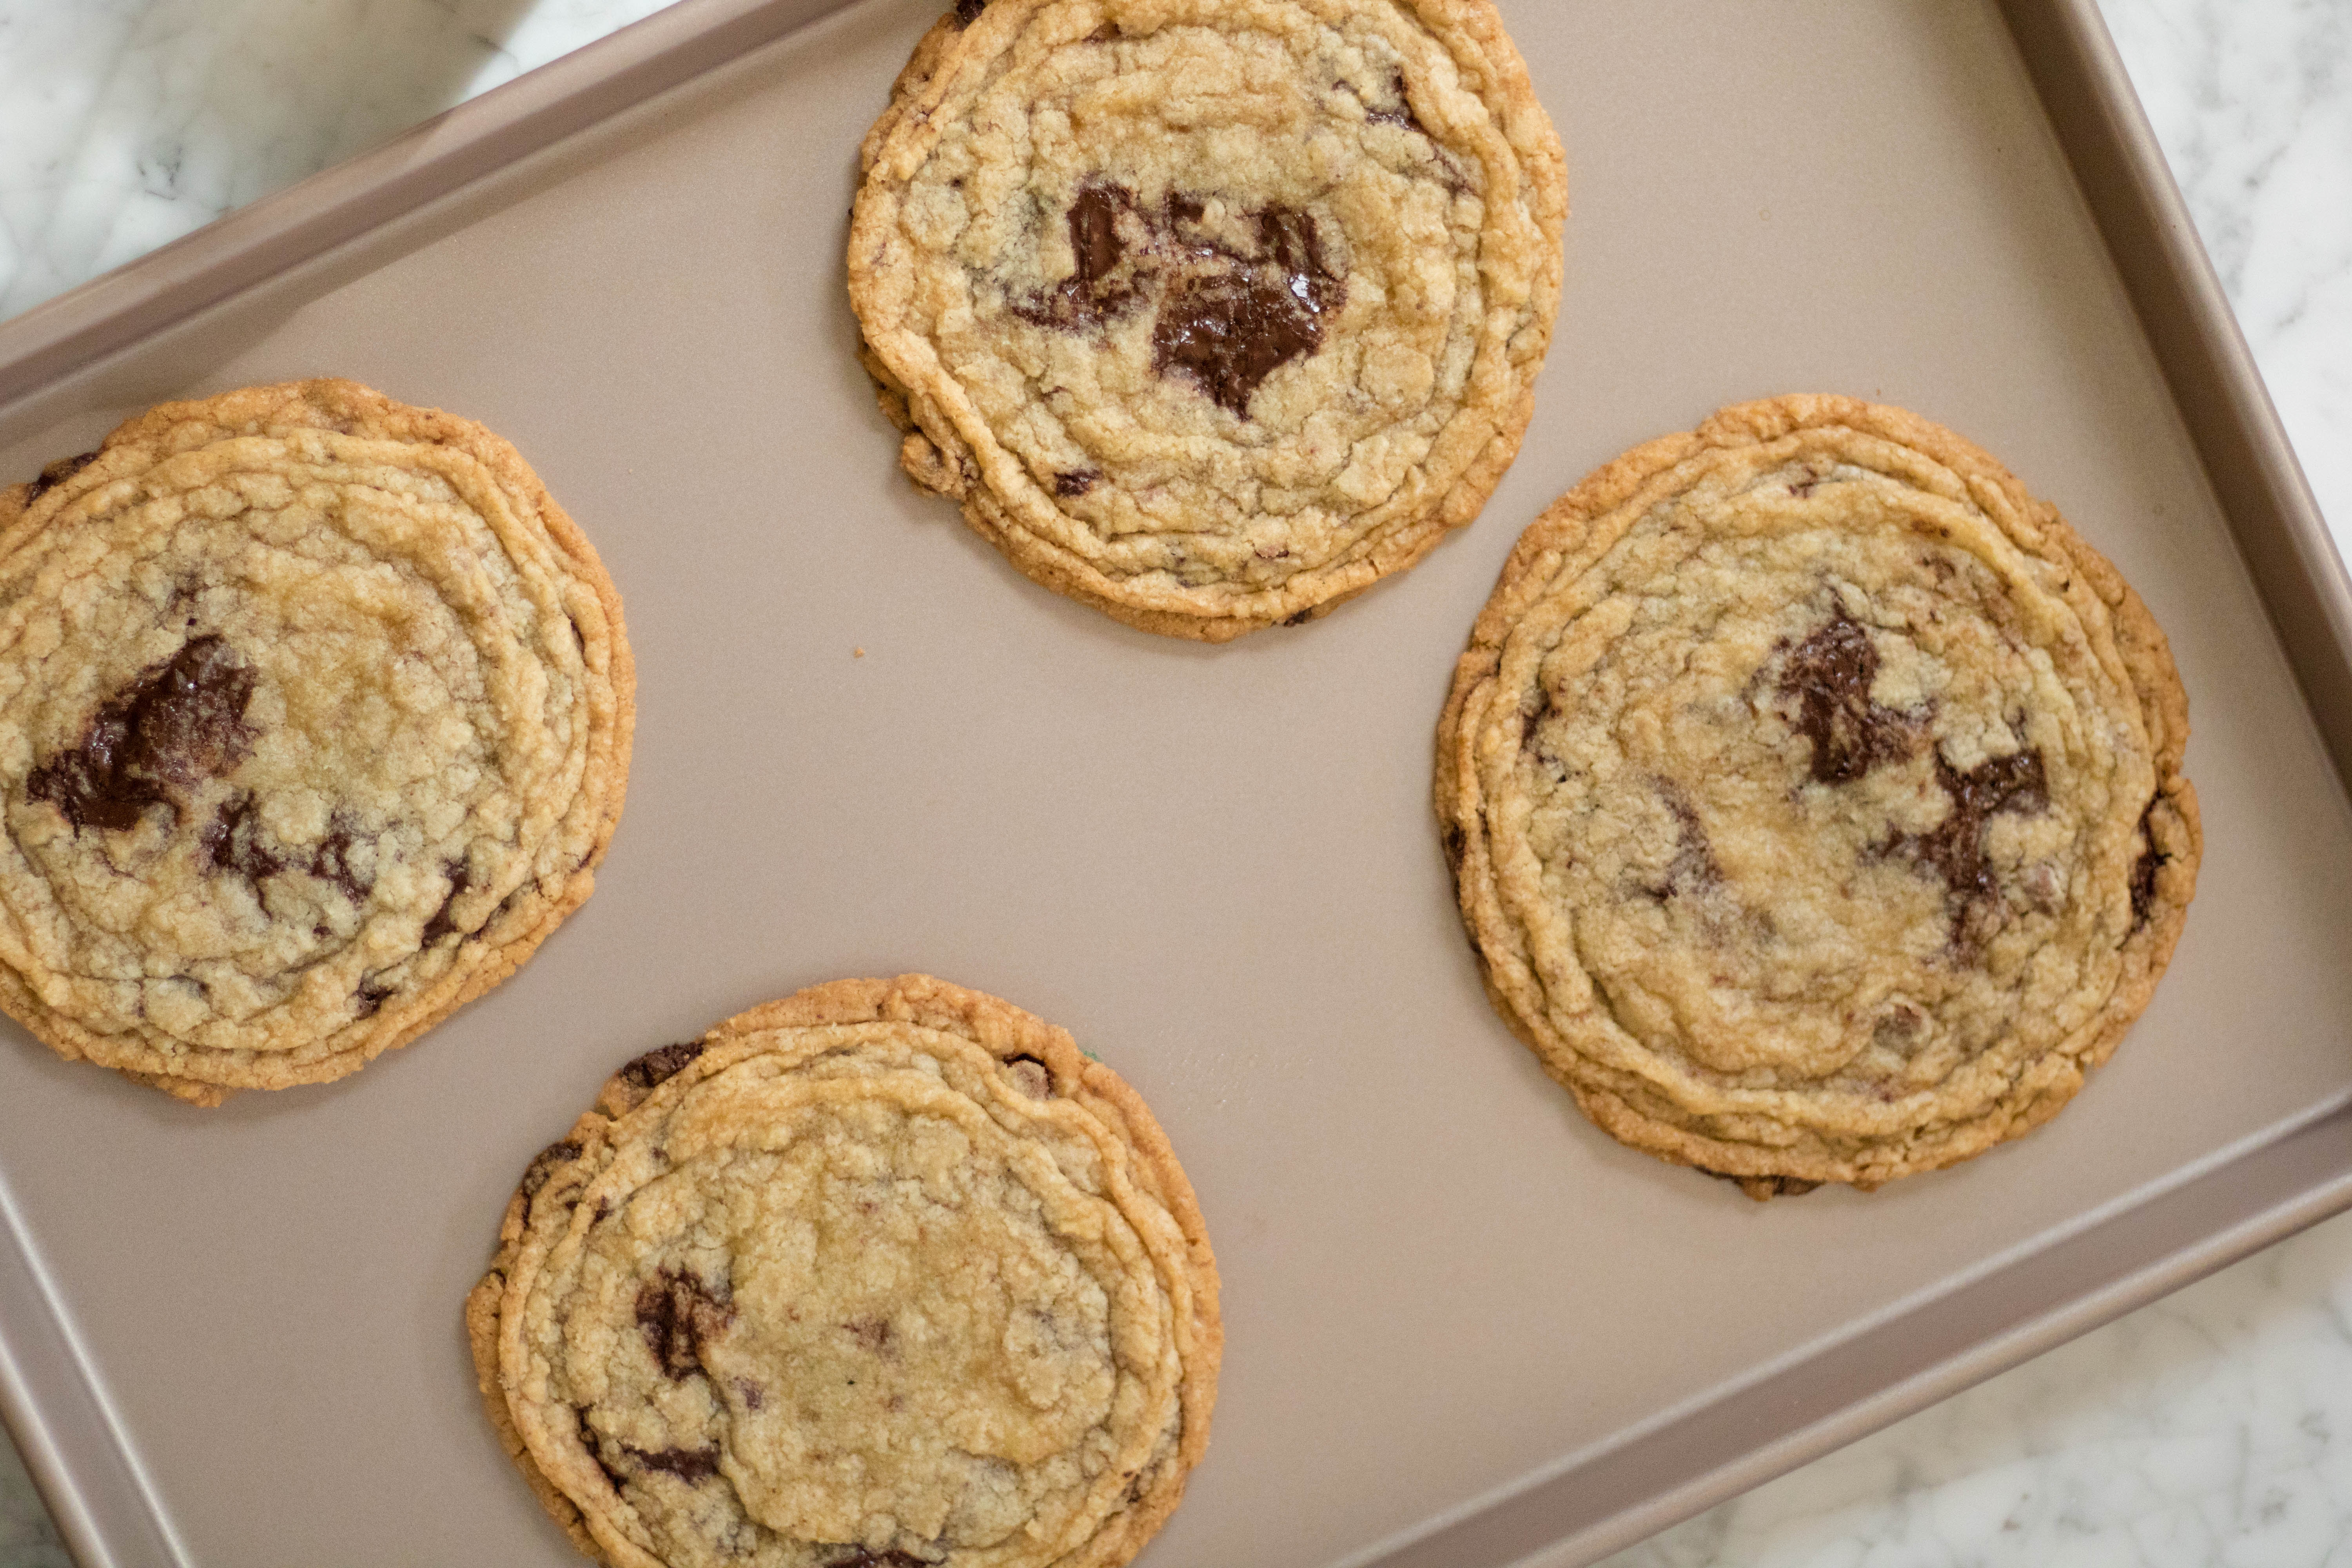 Sarah Kieffer's pan bangin cookie, Internet famous chocolate chip cookies